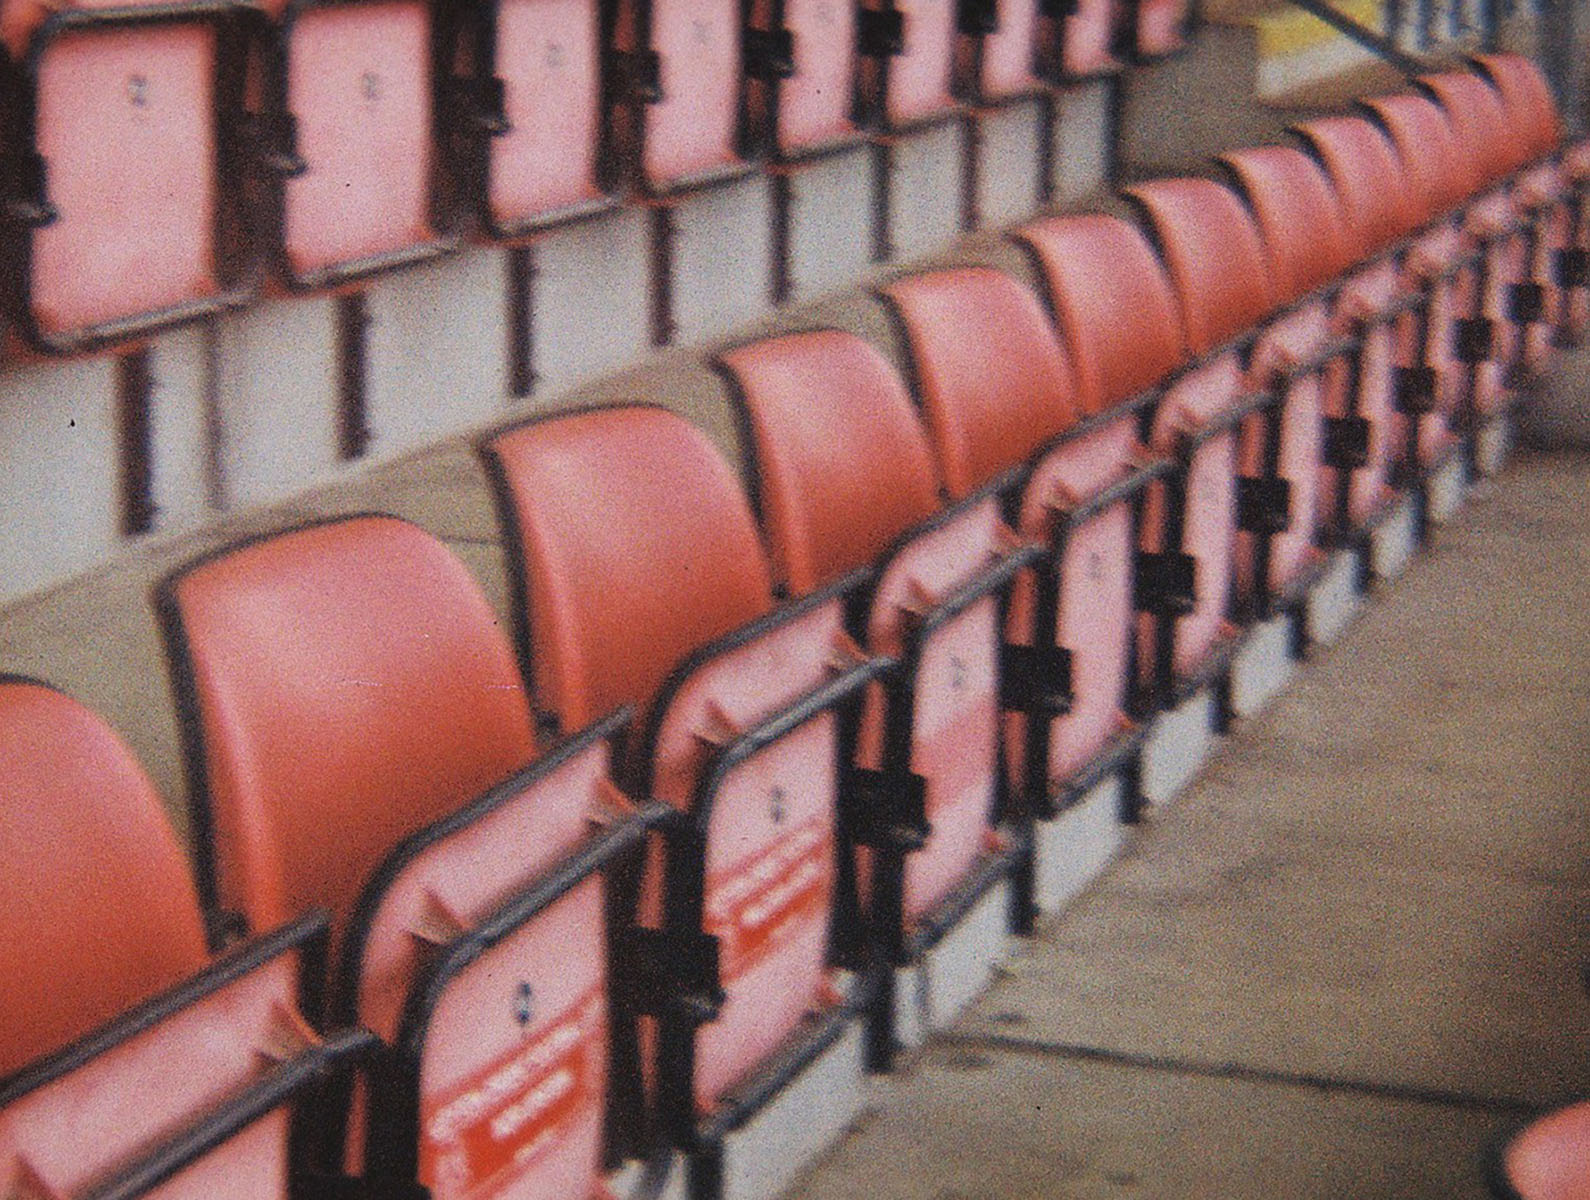 Leyton FC stadium seats by lifestyle photographer  Tim Cole